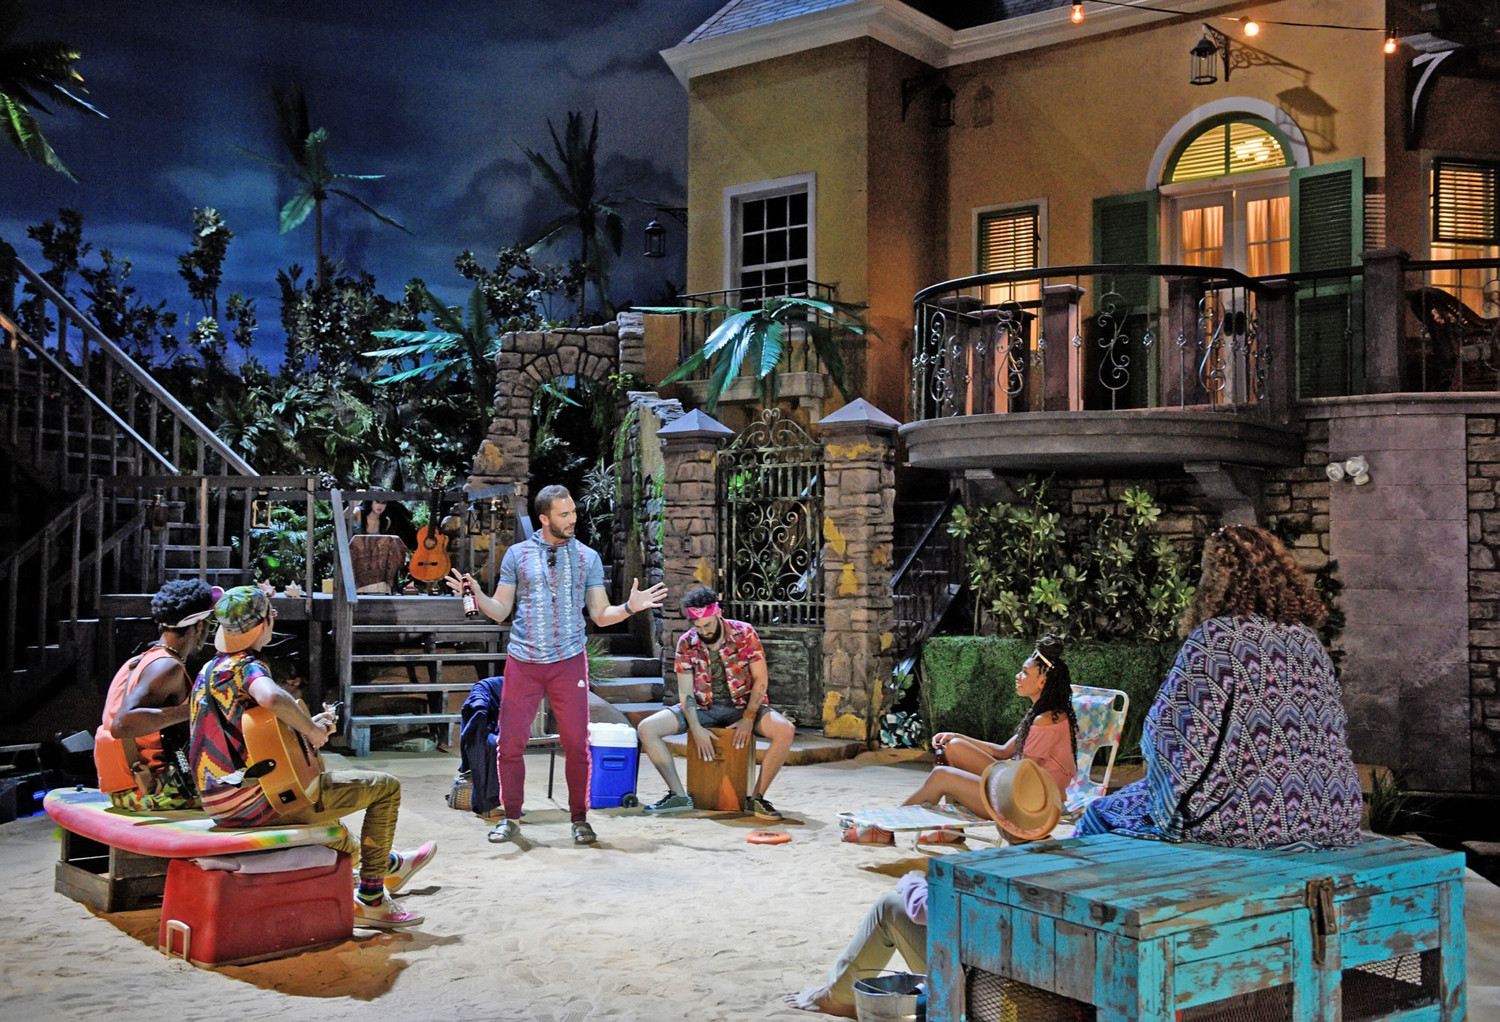 BWW Review: TWELFTH NIGHT Conjures a Comedic Oasis at Dallas Theater Center